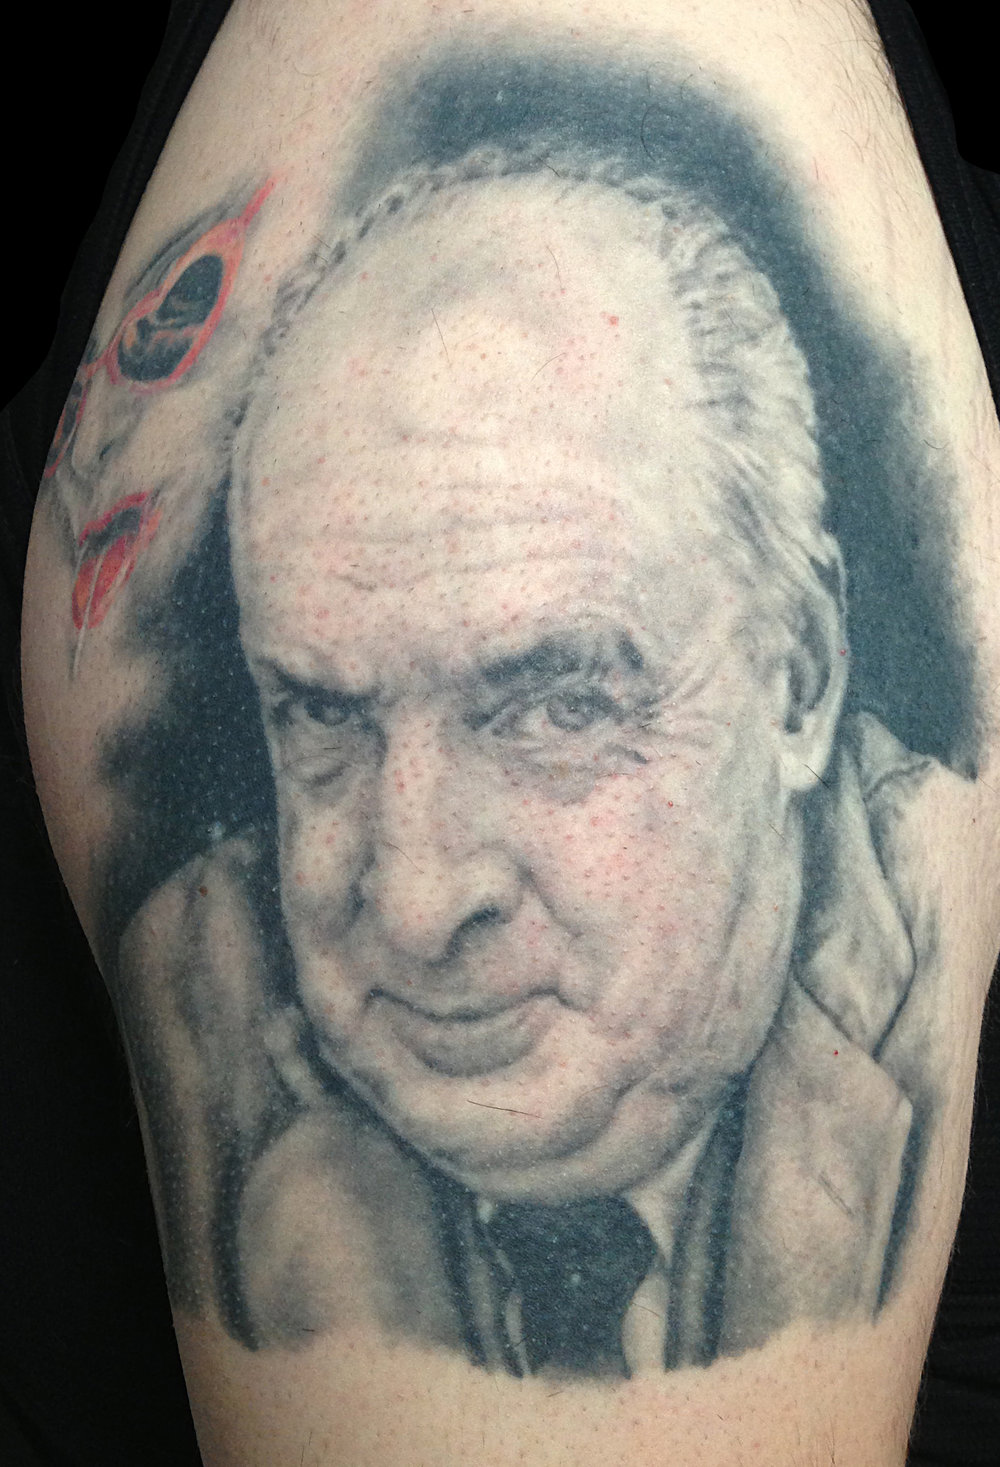 Black and Grey Vladimir Nabokov Portrait Tattoo, healed and 14 years old in this photo taken in 2013